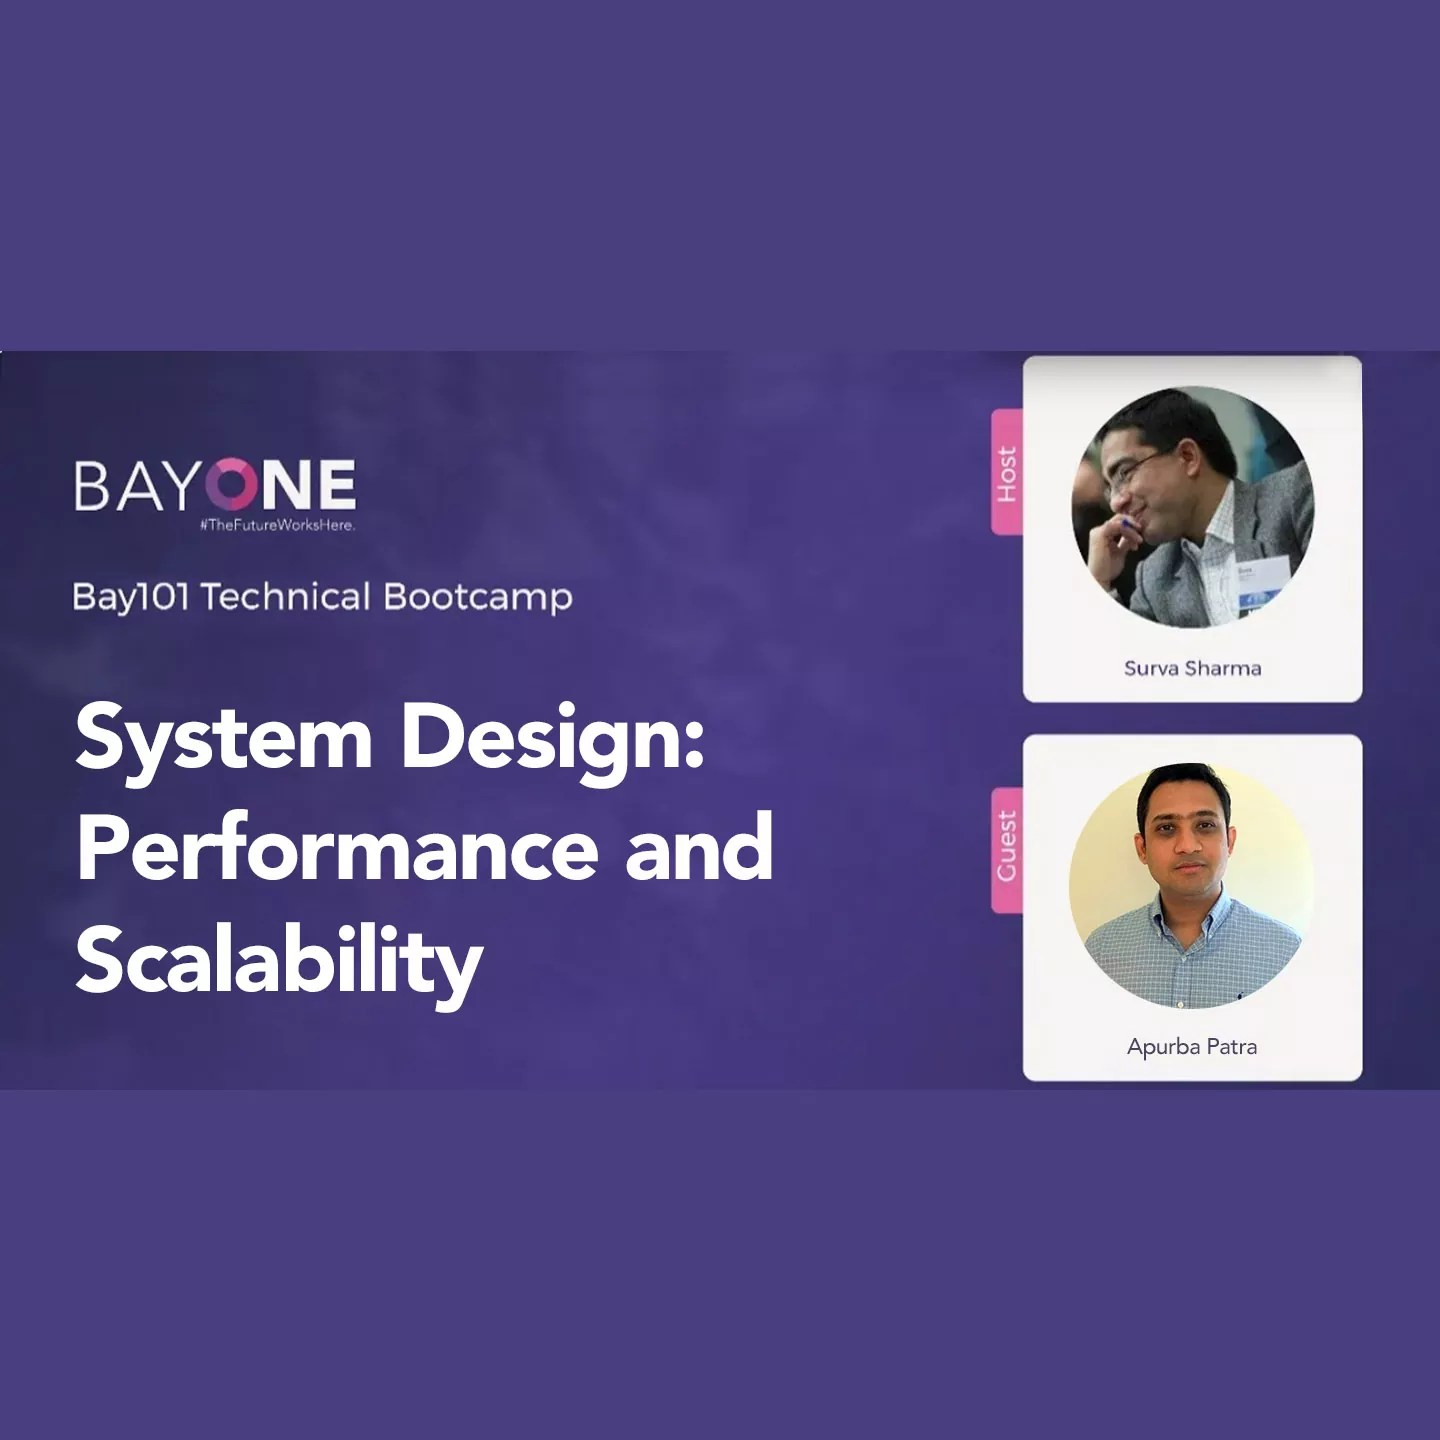 System Design: Performance and Scalability